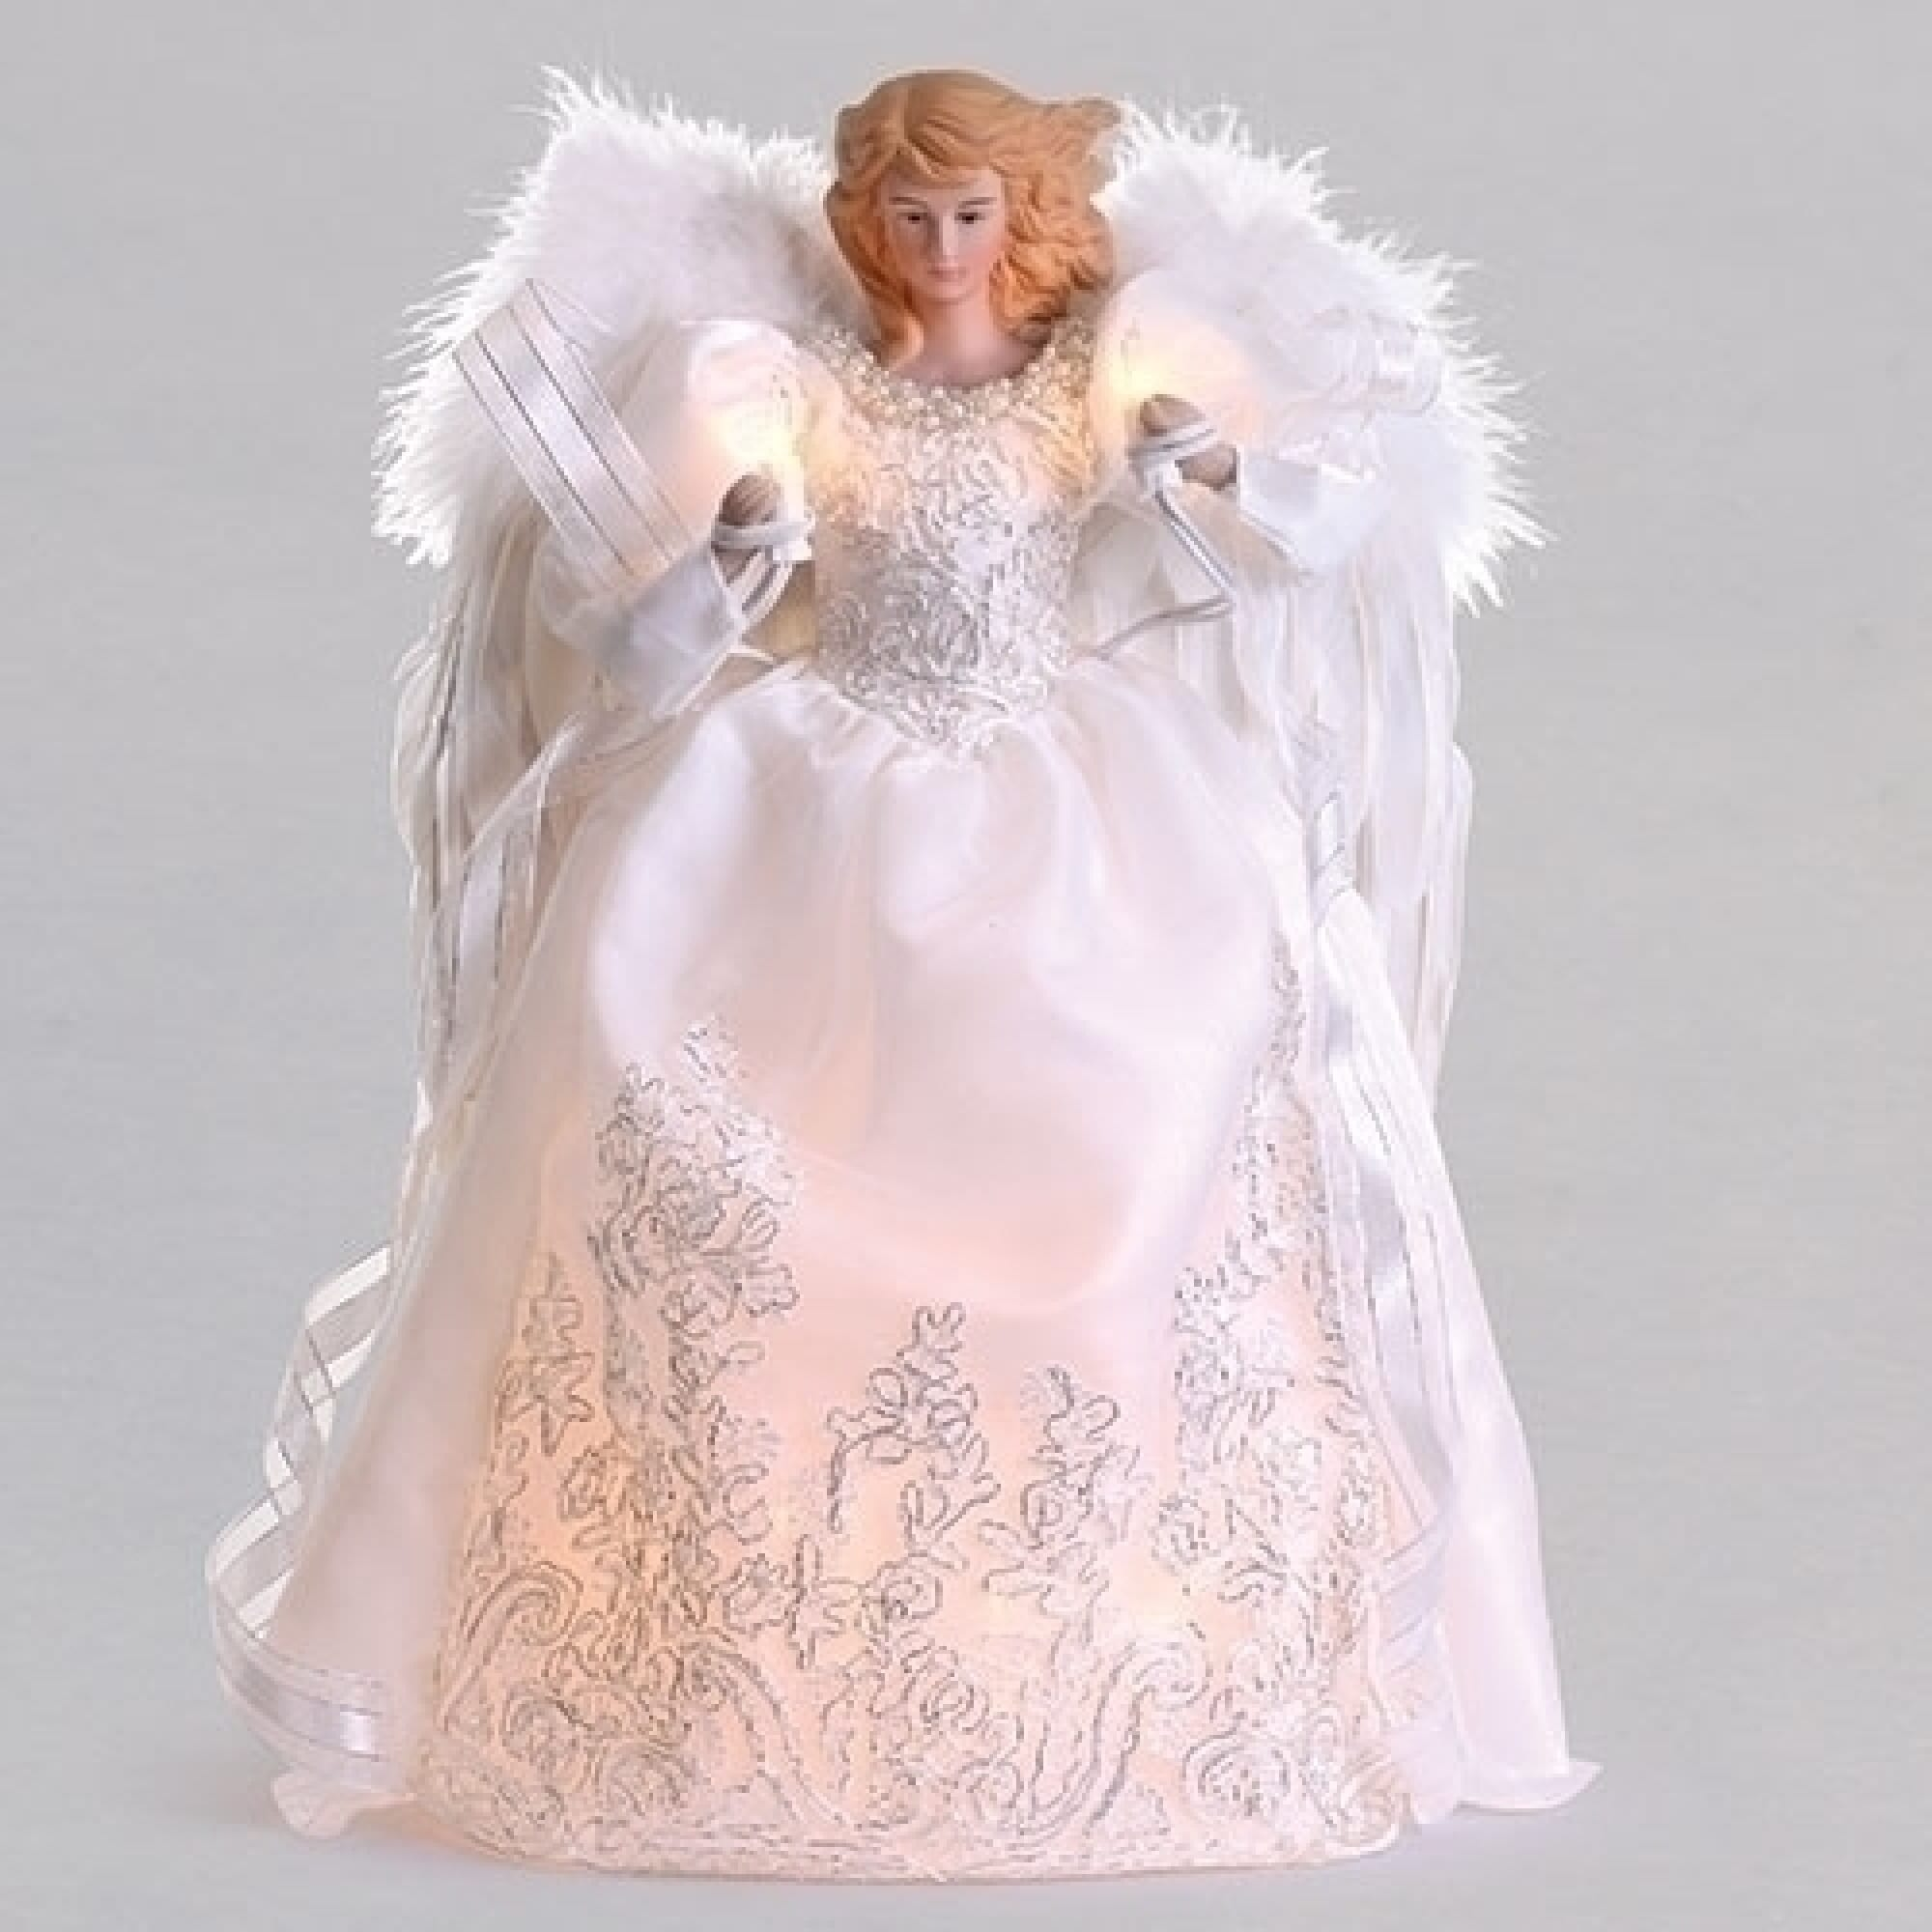 Christmas Angel Tree Topper.14 White And Silver Led Christmas Angel Tree Topper N A